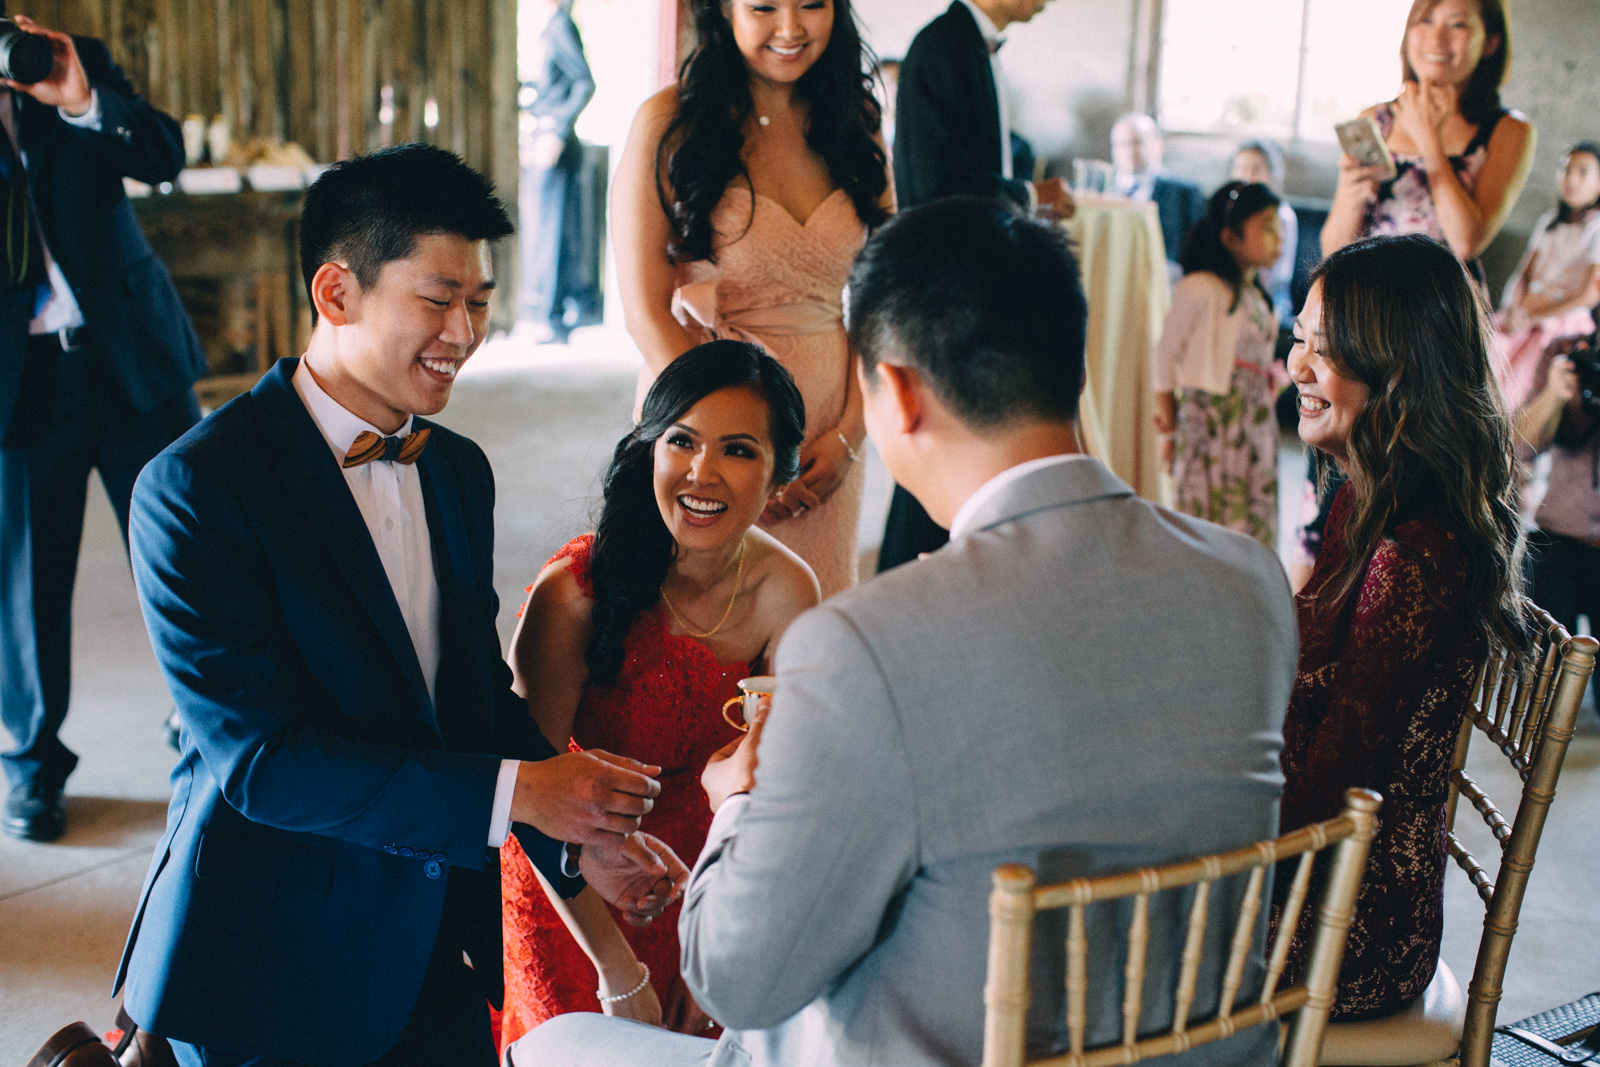 cambium-farms-wedding-photography-by-sam-wong-of-artanis-collective_27